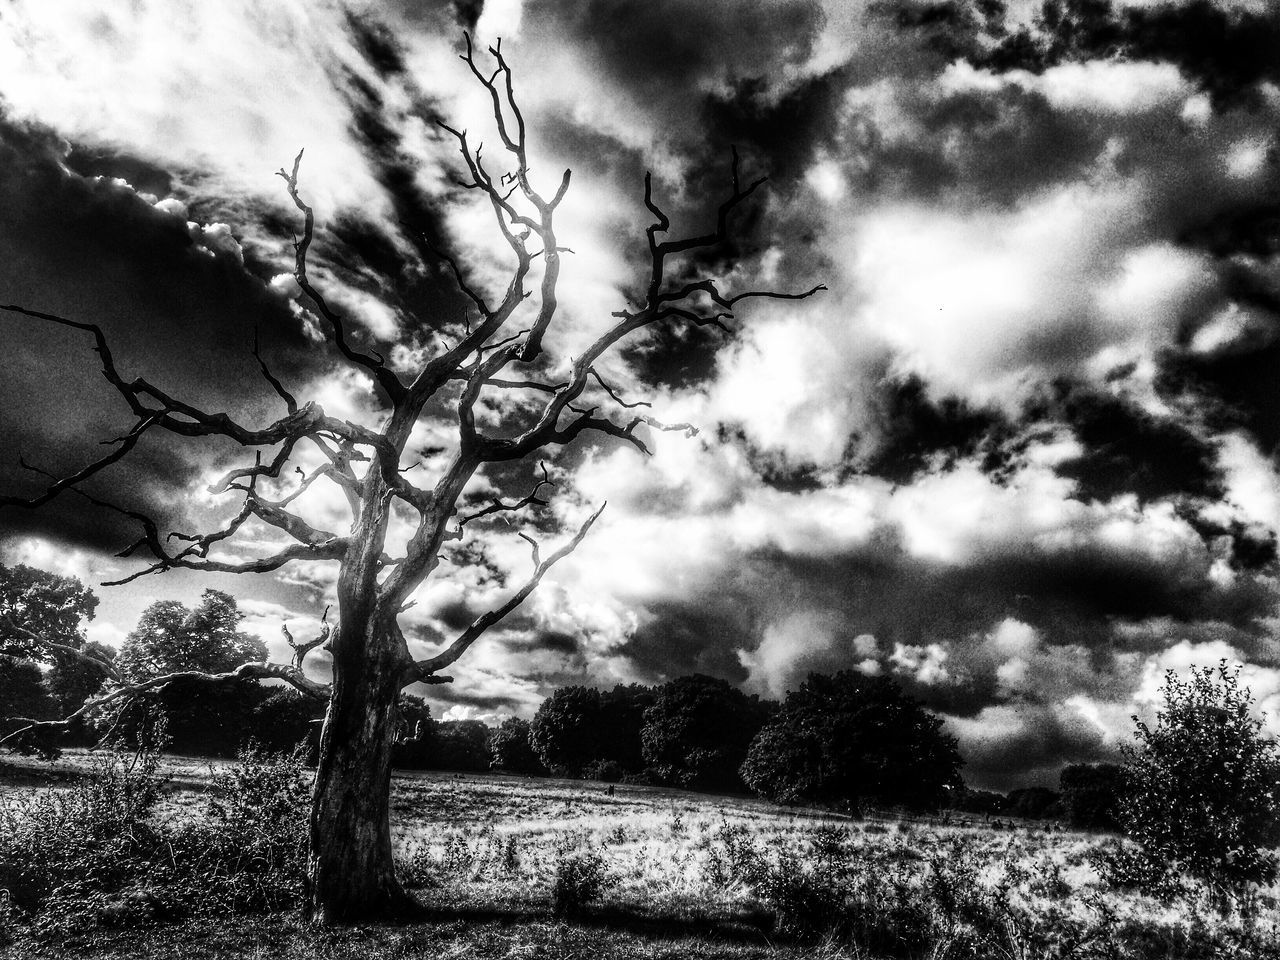 Monochrome Photography Tree Tranquil Scene Tranquility Scenics Landscape Branch Tree Trunk Bare Tree Beauty In Nature Cloud - Sky Non-urban Scene Nature Sky Remote Growth Solitude Day Cloud Cloudy Outdoors IPhoneography London Hampstead Heath Snapseed